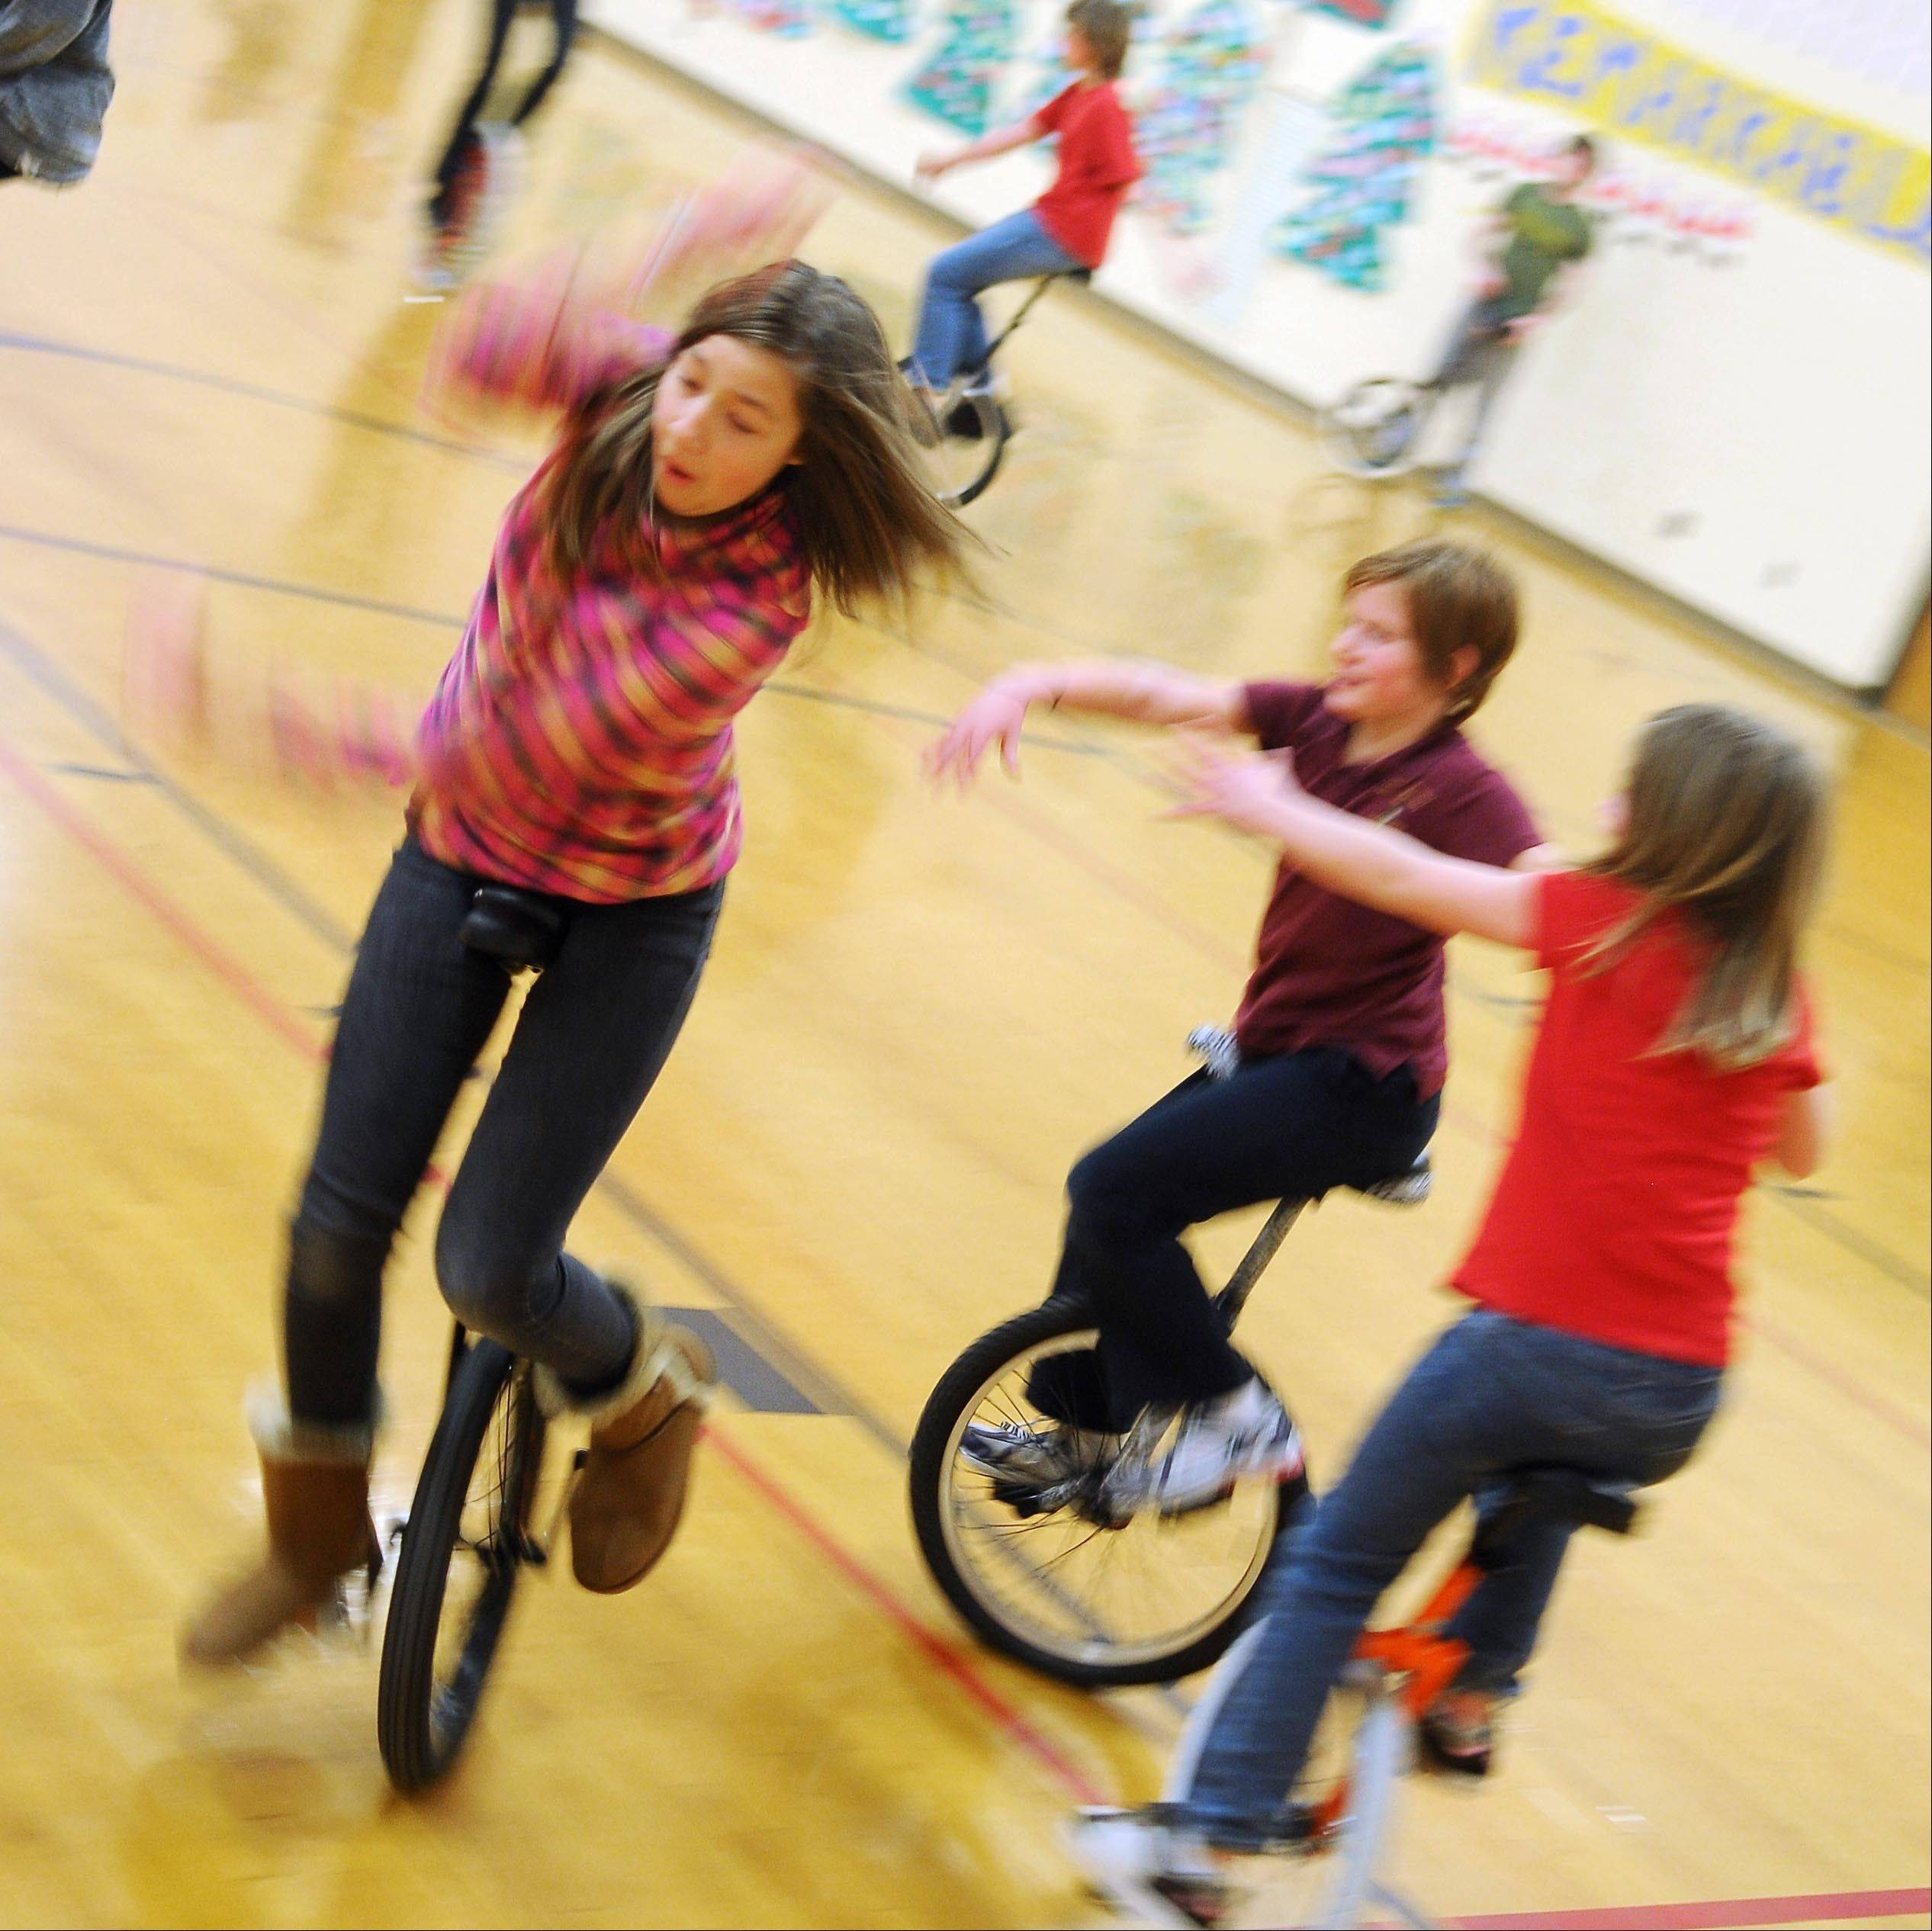 Mya Albright, twelve years-old, tries to avoid a tag in a game called 'Blob Tag' while riding a unicycle in the gymnasium at St. Croix Central Elementary School in Roberts, Wis. Mya participates in a community education program hosted by the St. Croix Central School district that welcomes young and old to learn and master the unicycle with the assistance of the Twin Cities Unicycle Club.